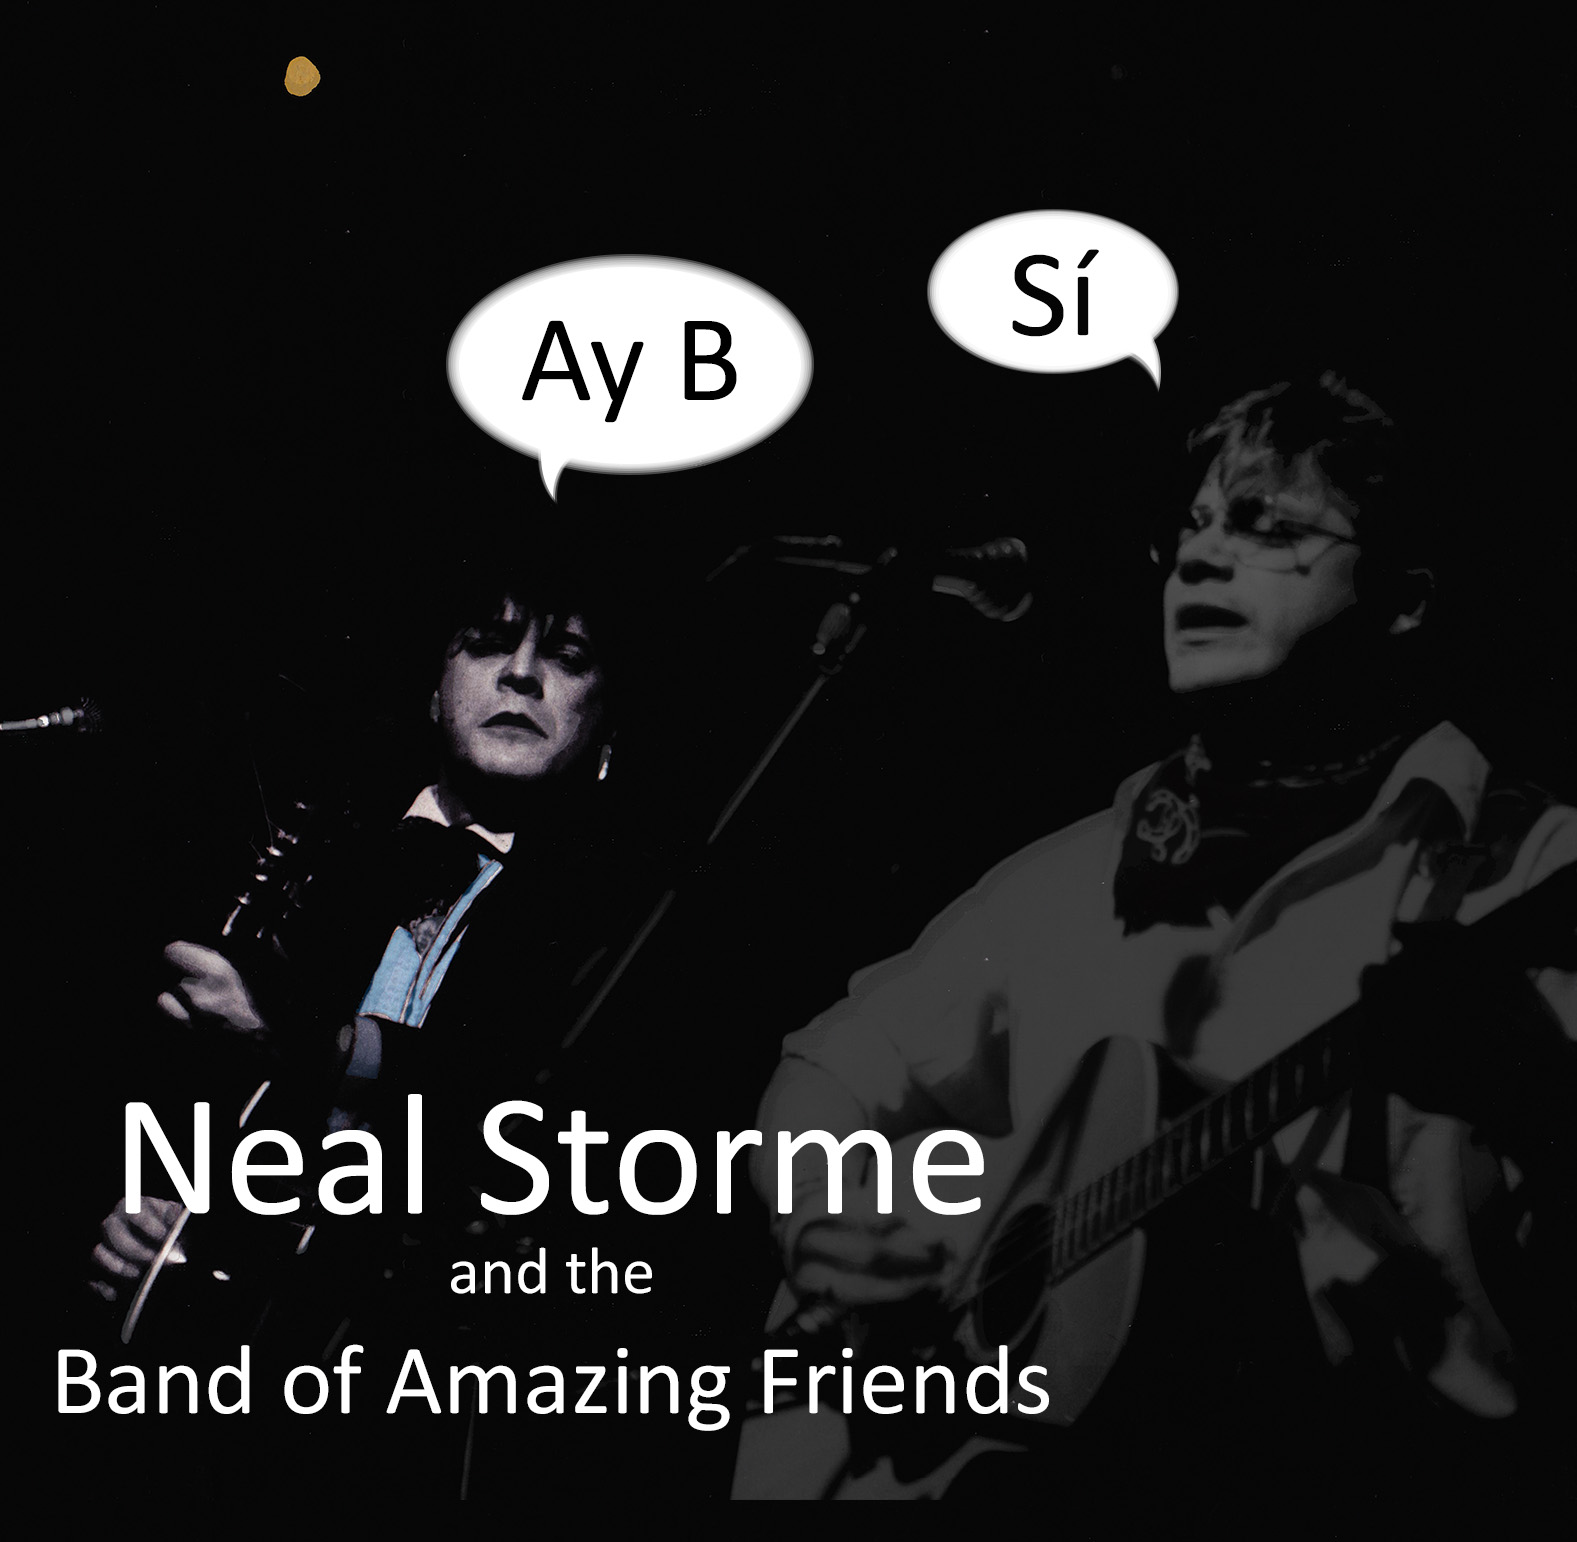 Click to Buy Ay B Si by Neal Storme and the Band of Amazing Friends